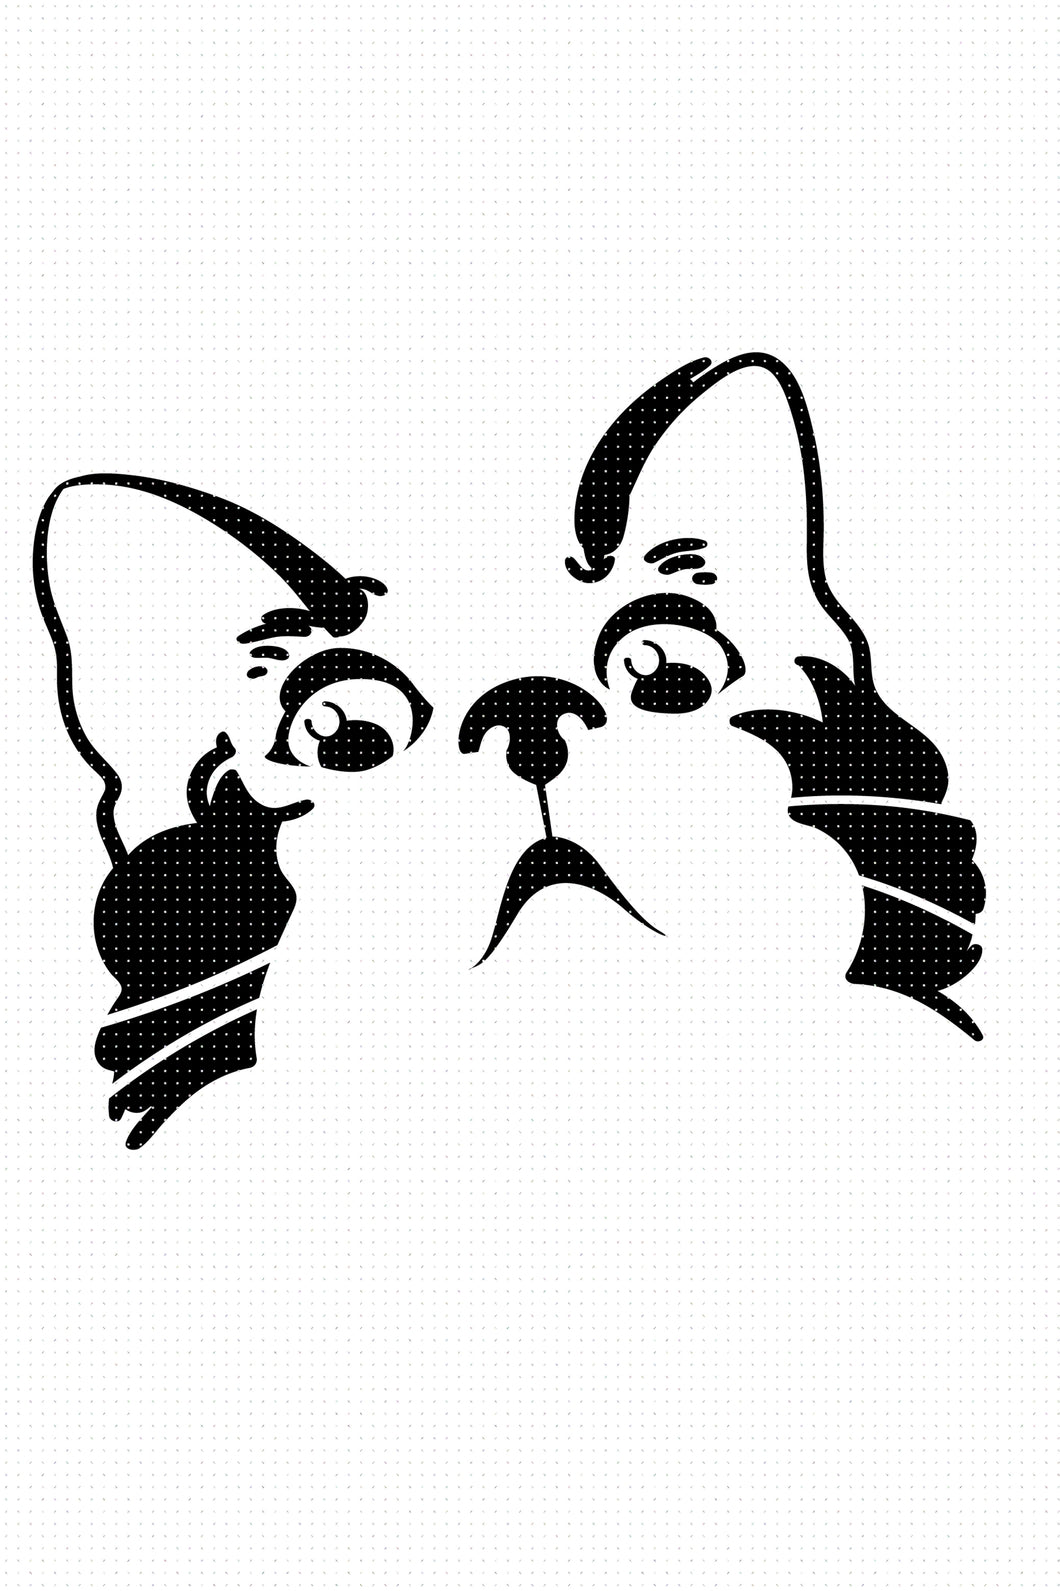 free shocked cat SVG, PNG, DXF, clipart, EPS, vector cut file instant download for personal use